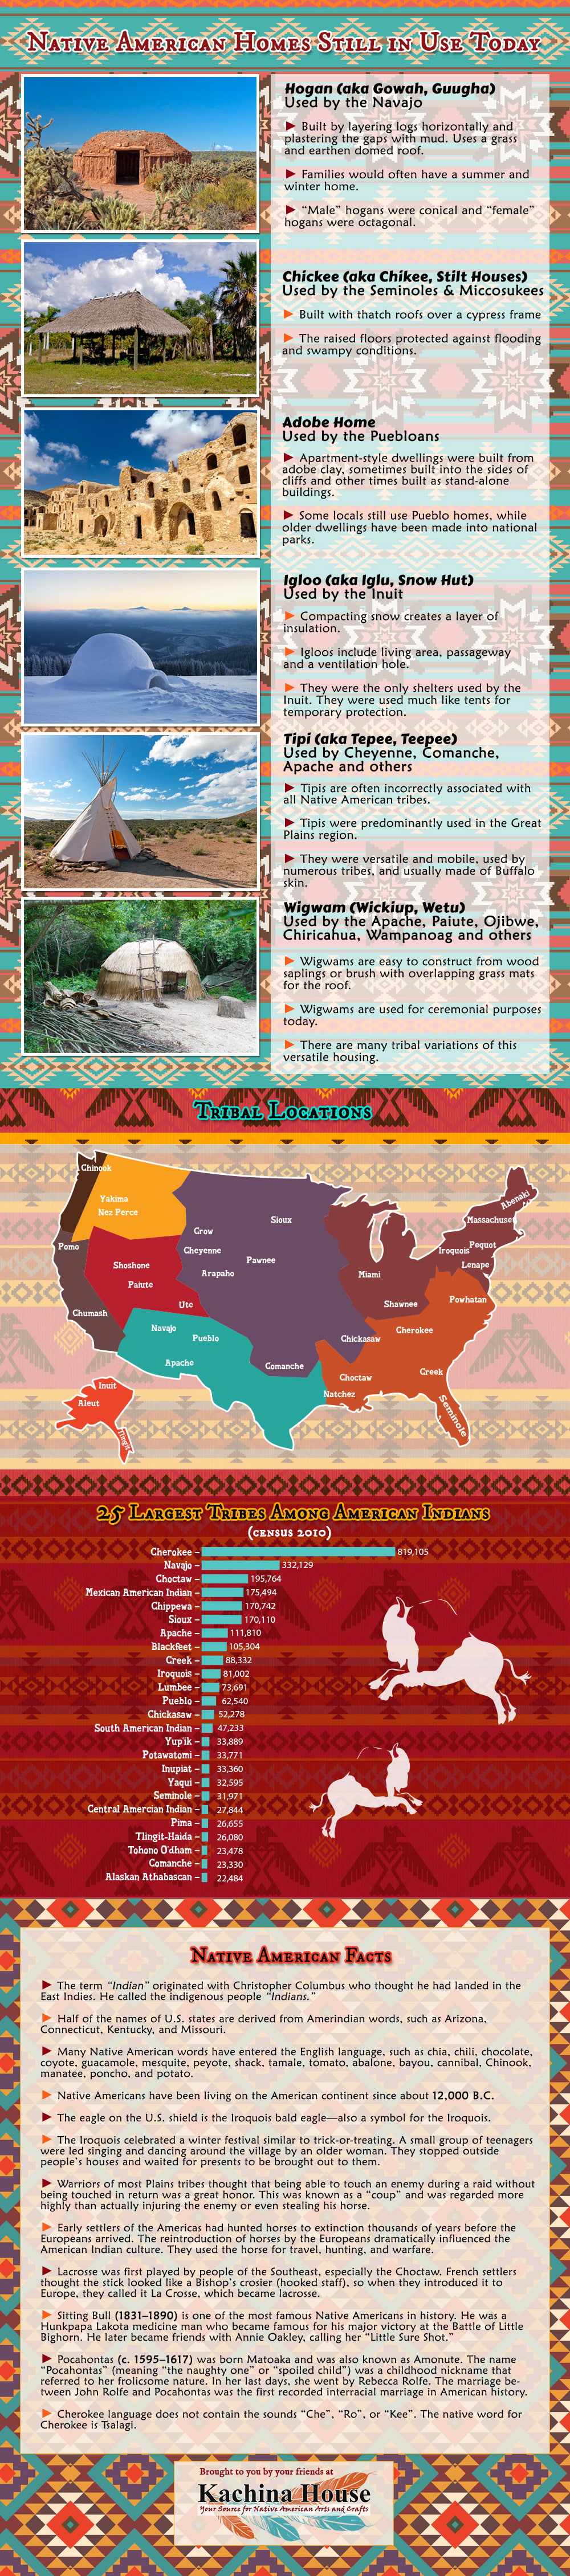 Native American Homes Infographic